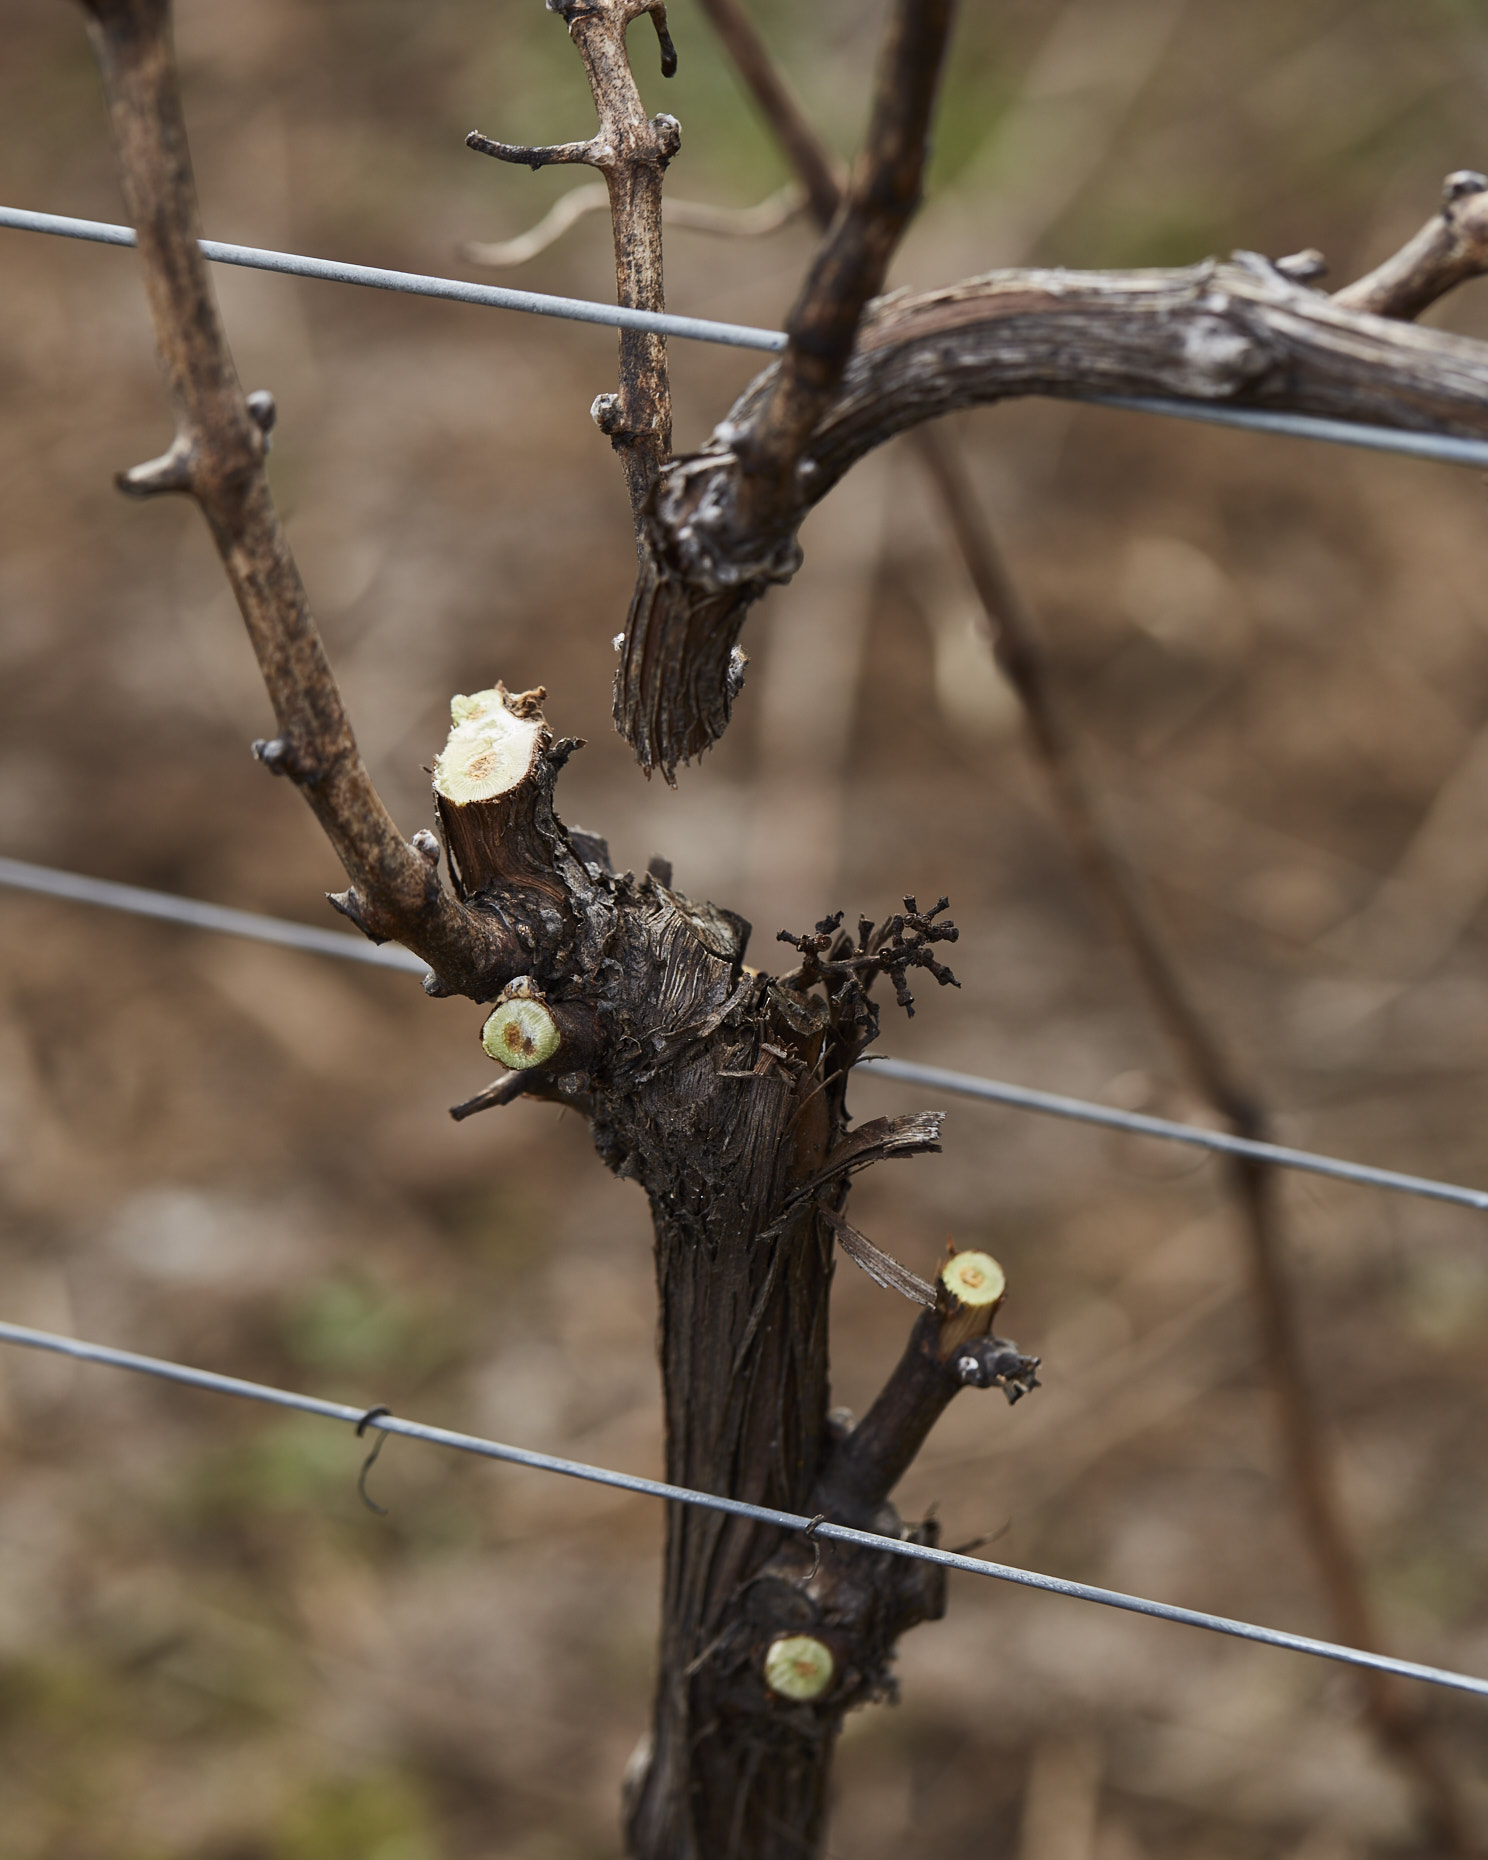 170104_JF_BF_PRUNING_121